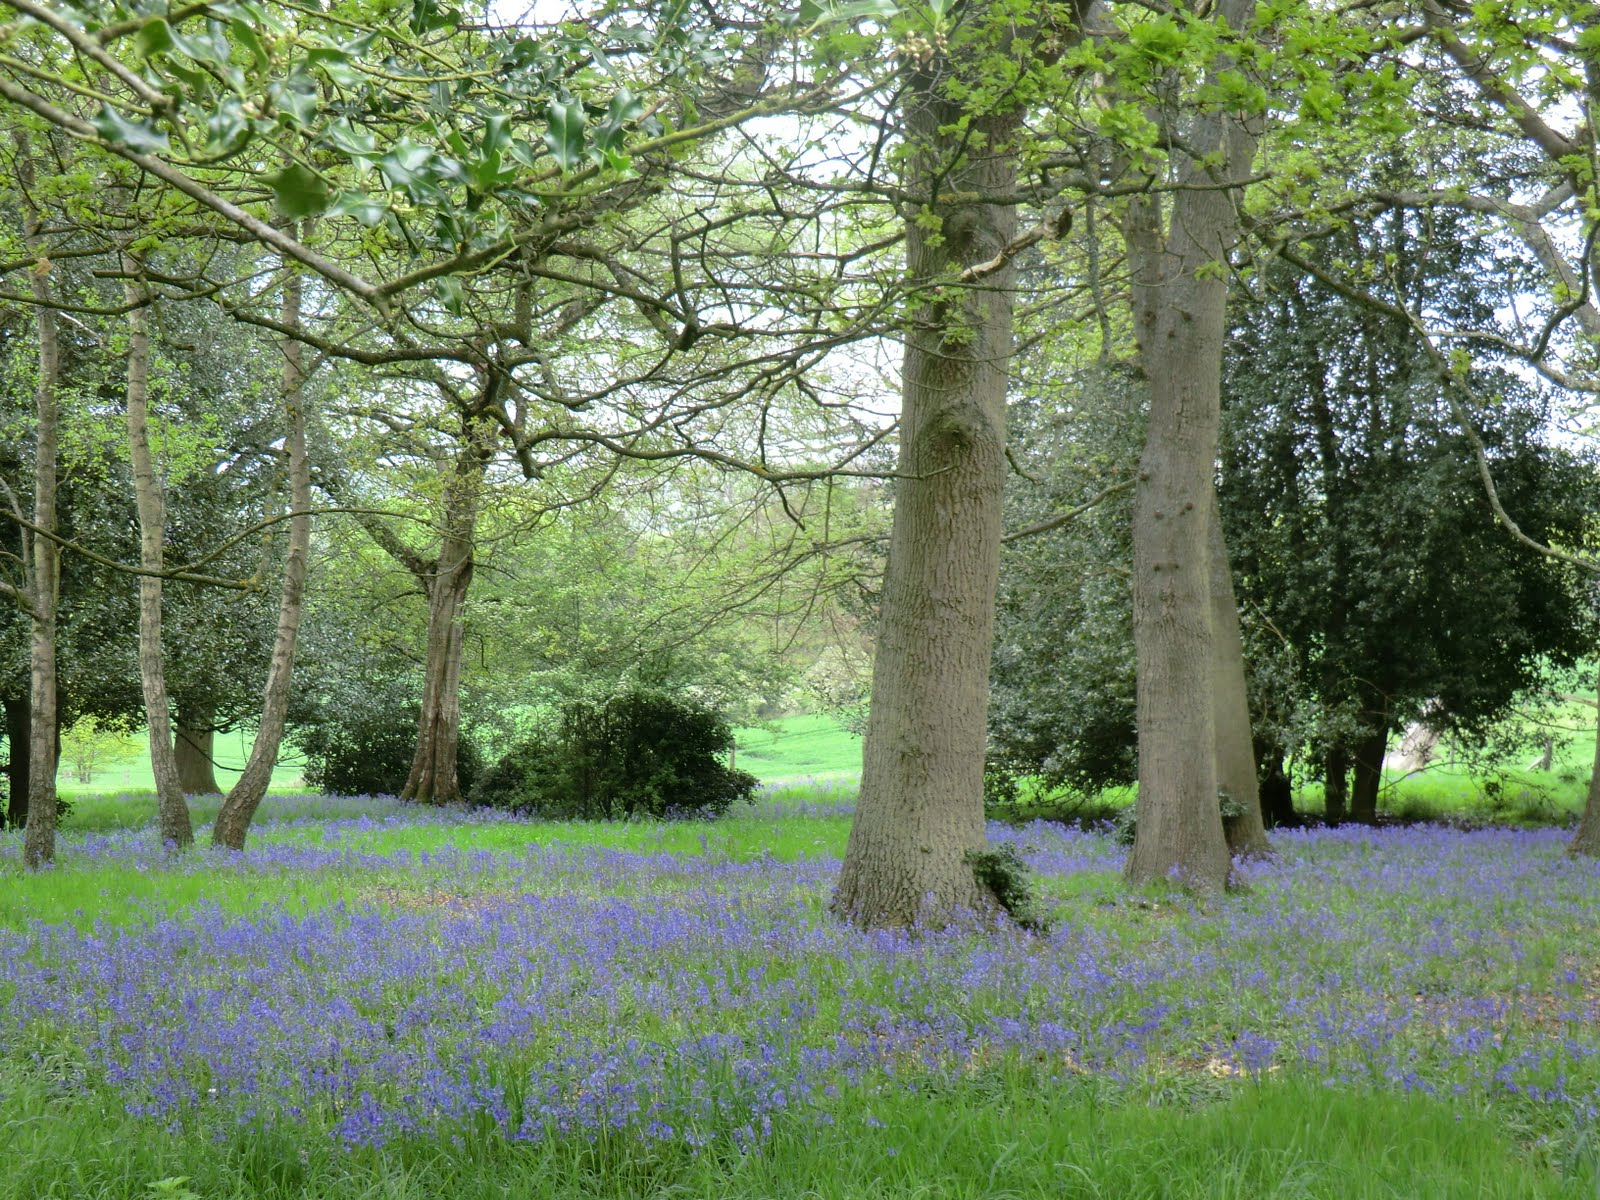 CIMG2934 Bluebells, Squerryes Park